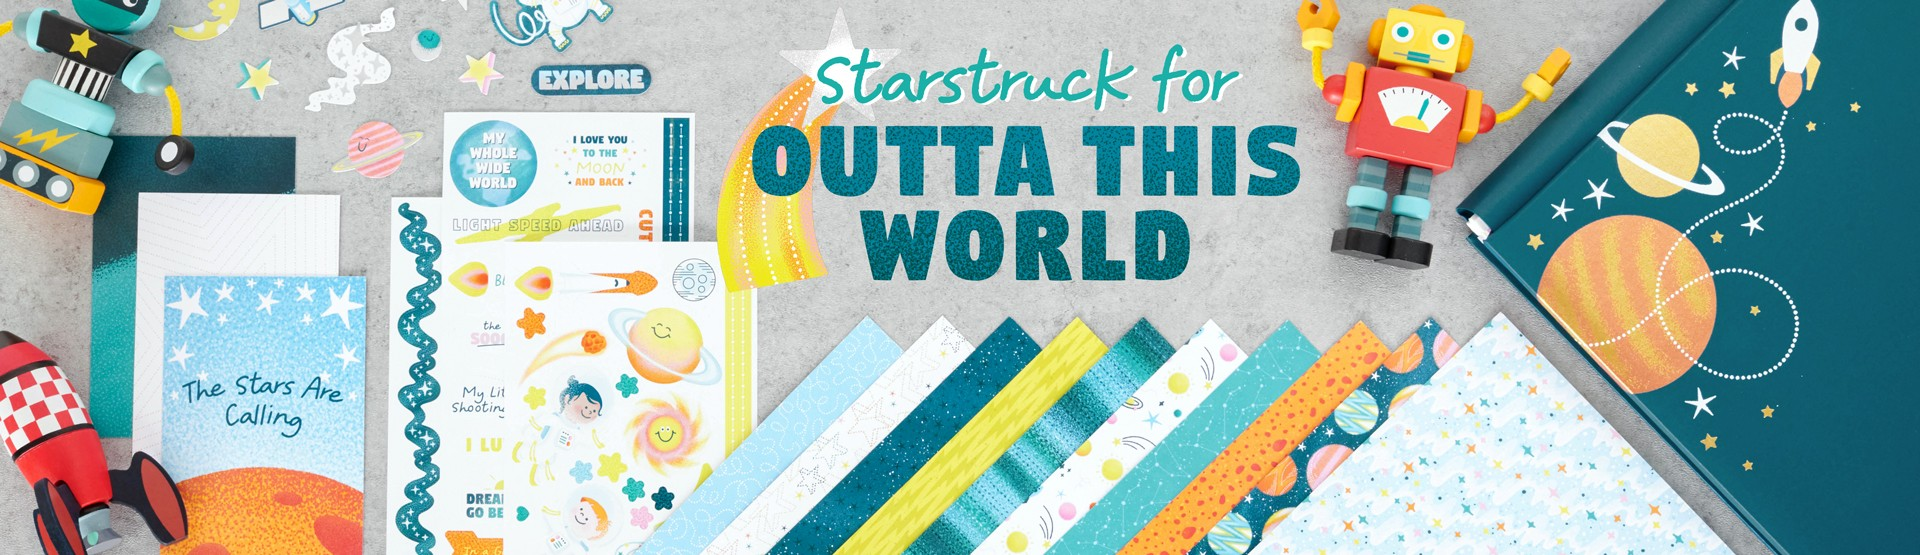 Outer Space Scrapbooking Supplies: Outta This World